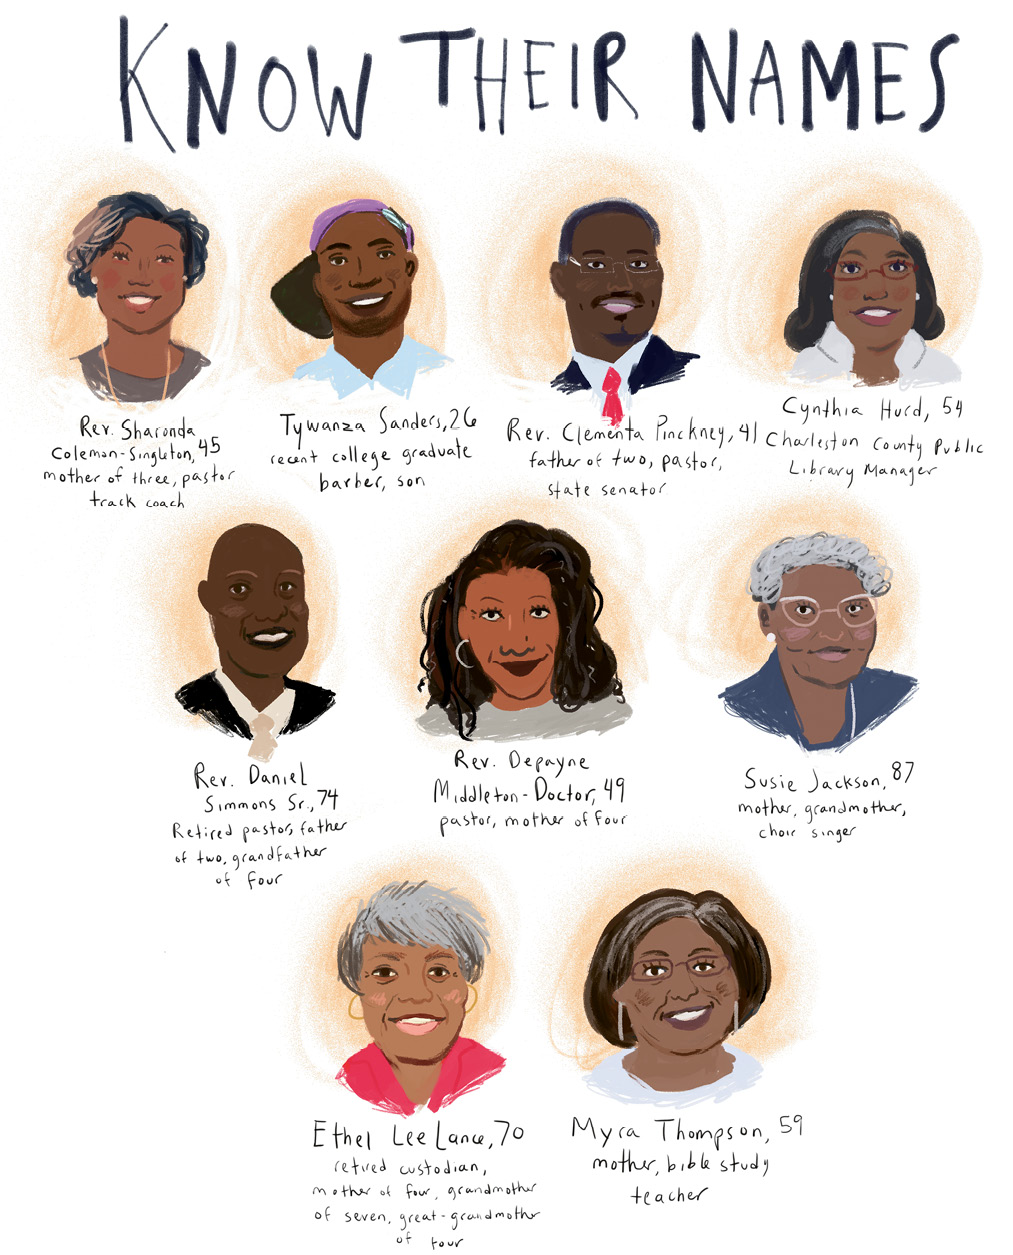 More Than Victims: They were mothers, fathers, sisters, brothers, cousins, teachers, preachers, poets. A beloved librarian, a persnickety church custodian, an inspiring coach. As artist Sarah Green illustrates, the nine are not a number, but individuals once full of life and love.